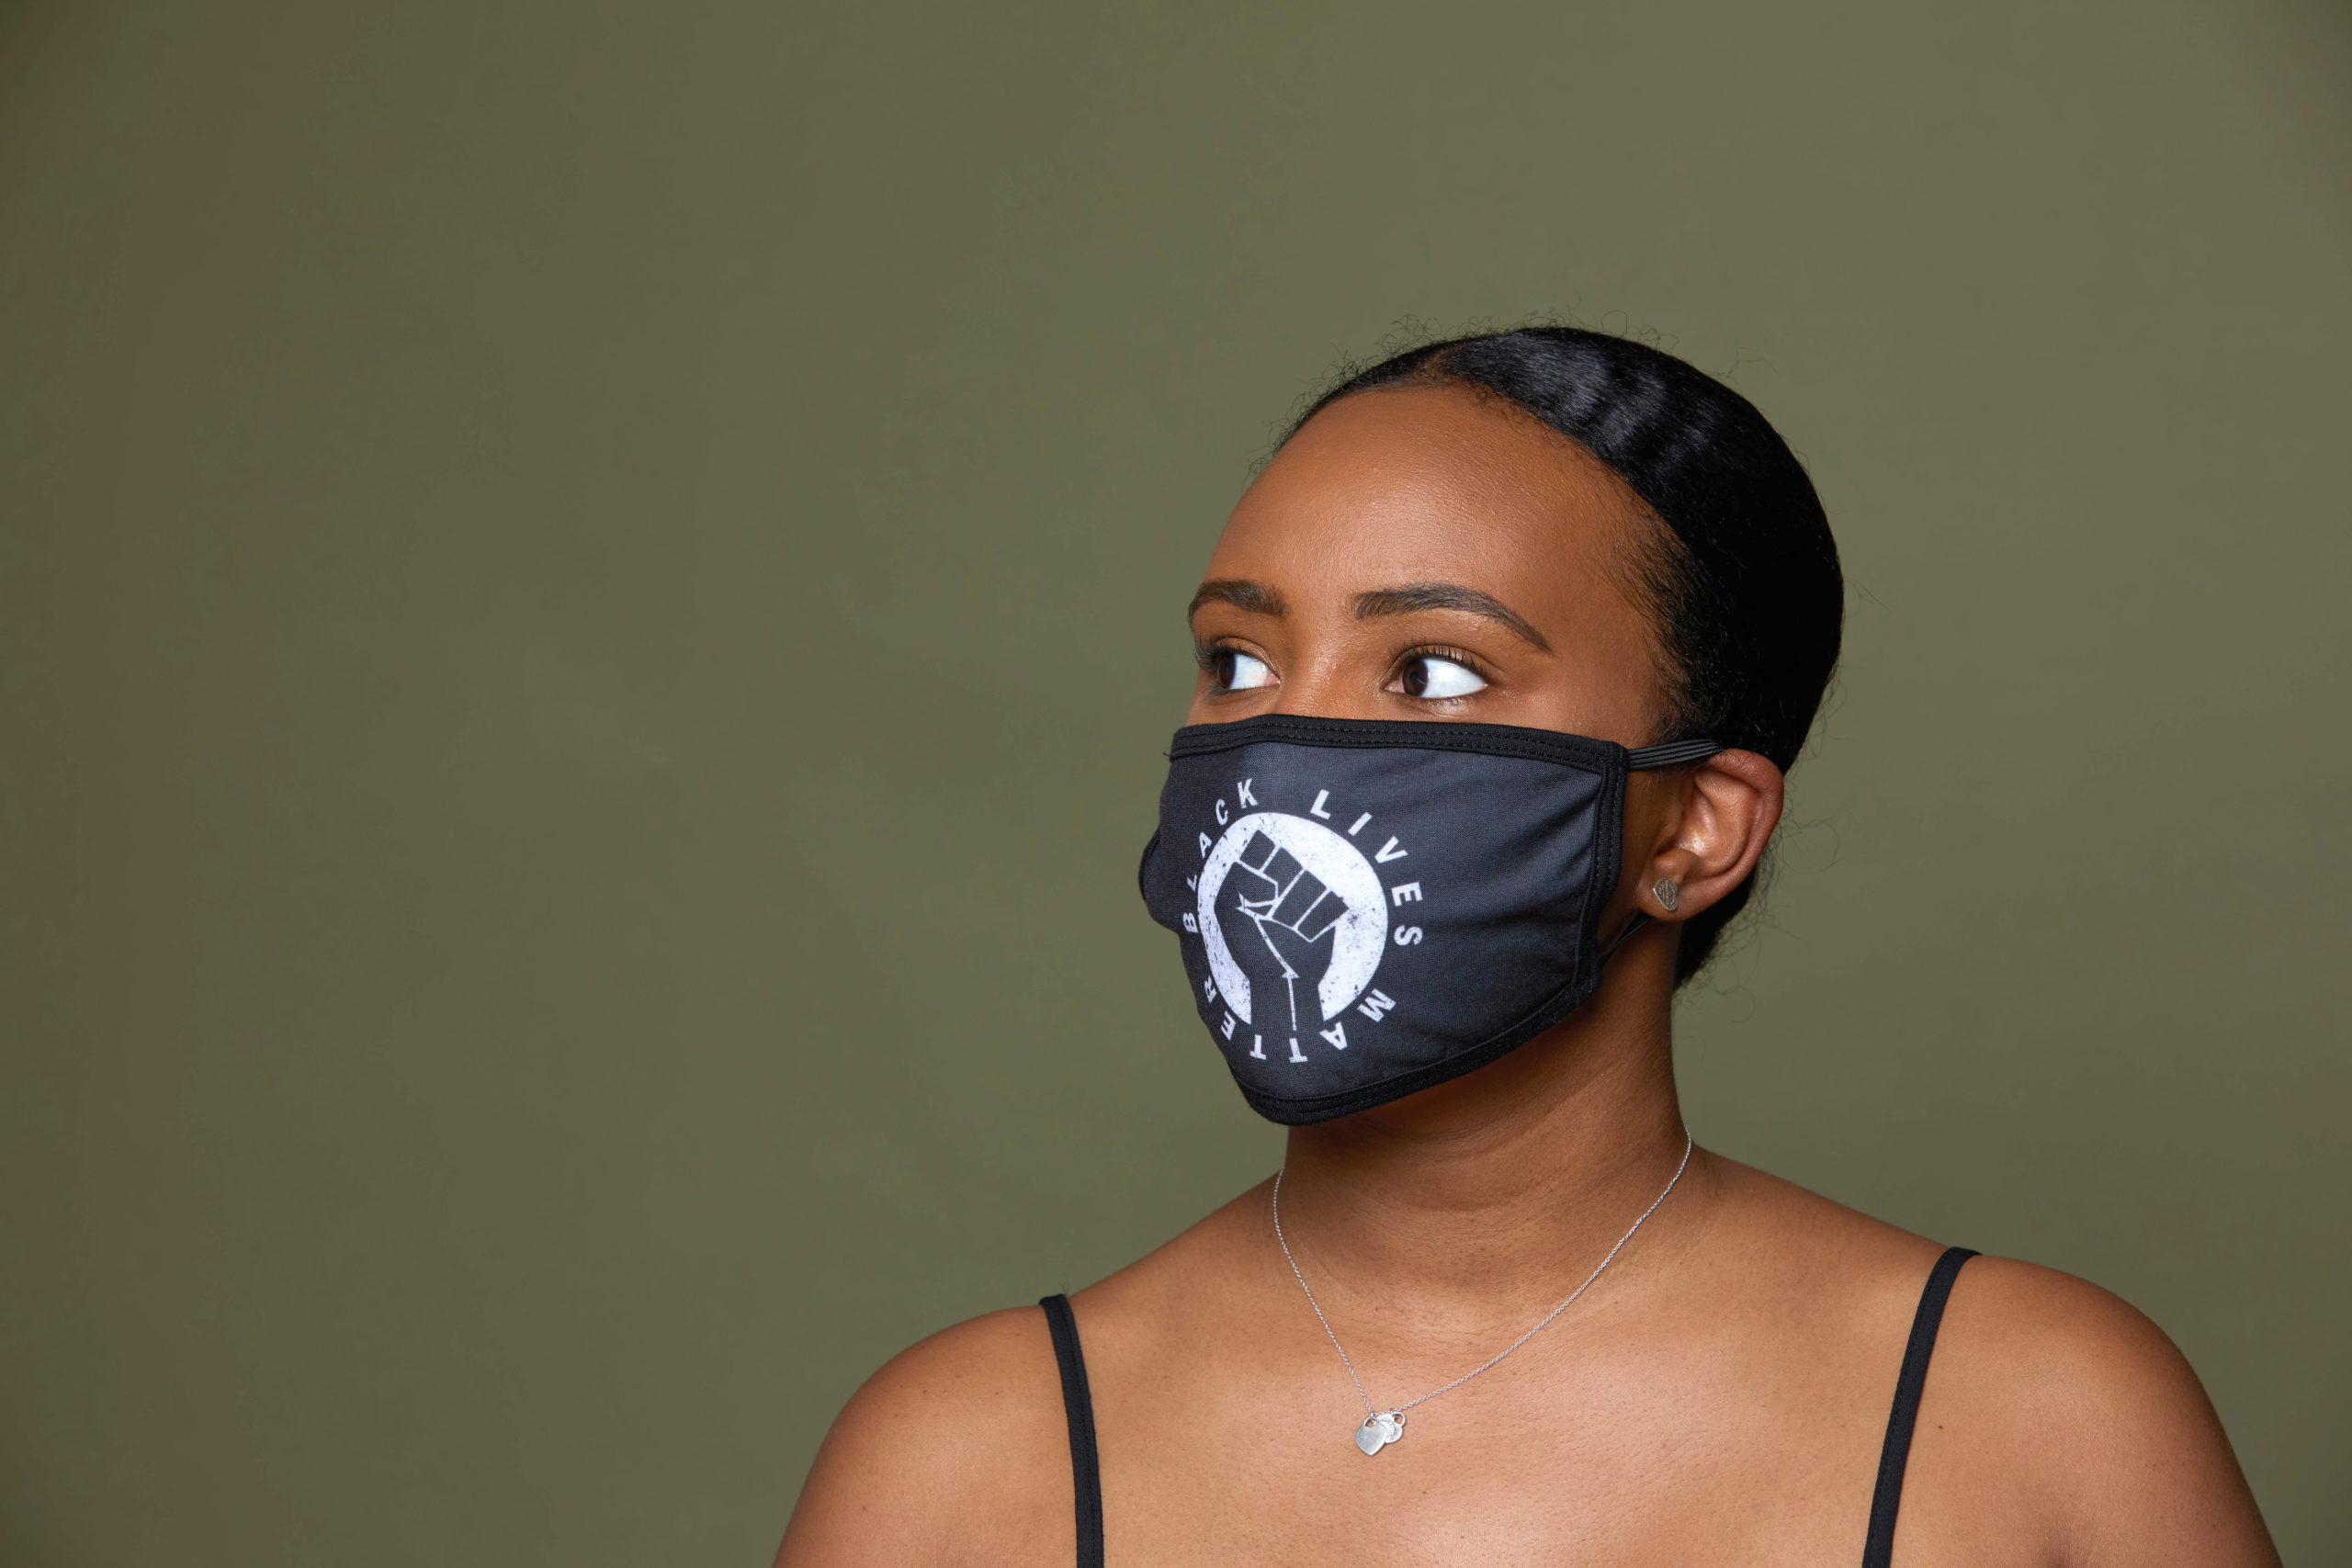 Woman wearing Black Lives Matter Face Mask